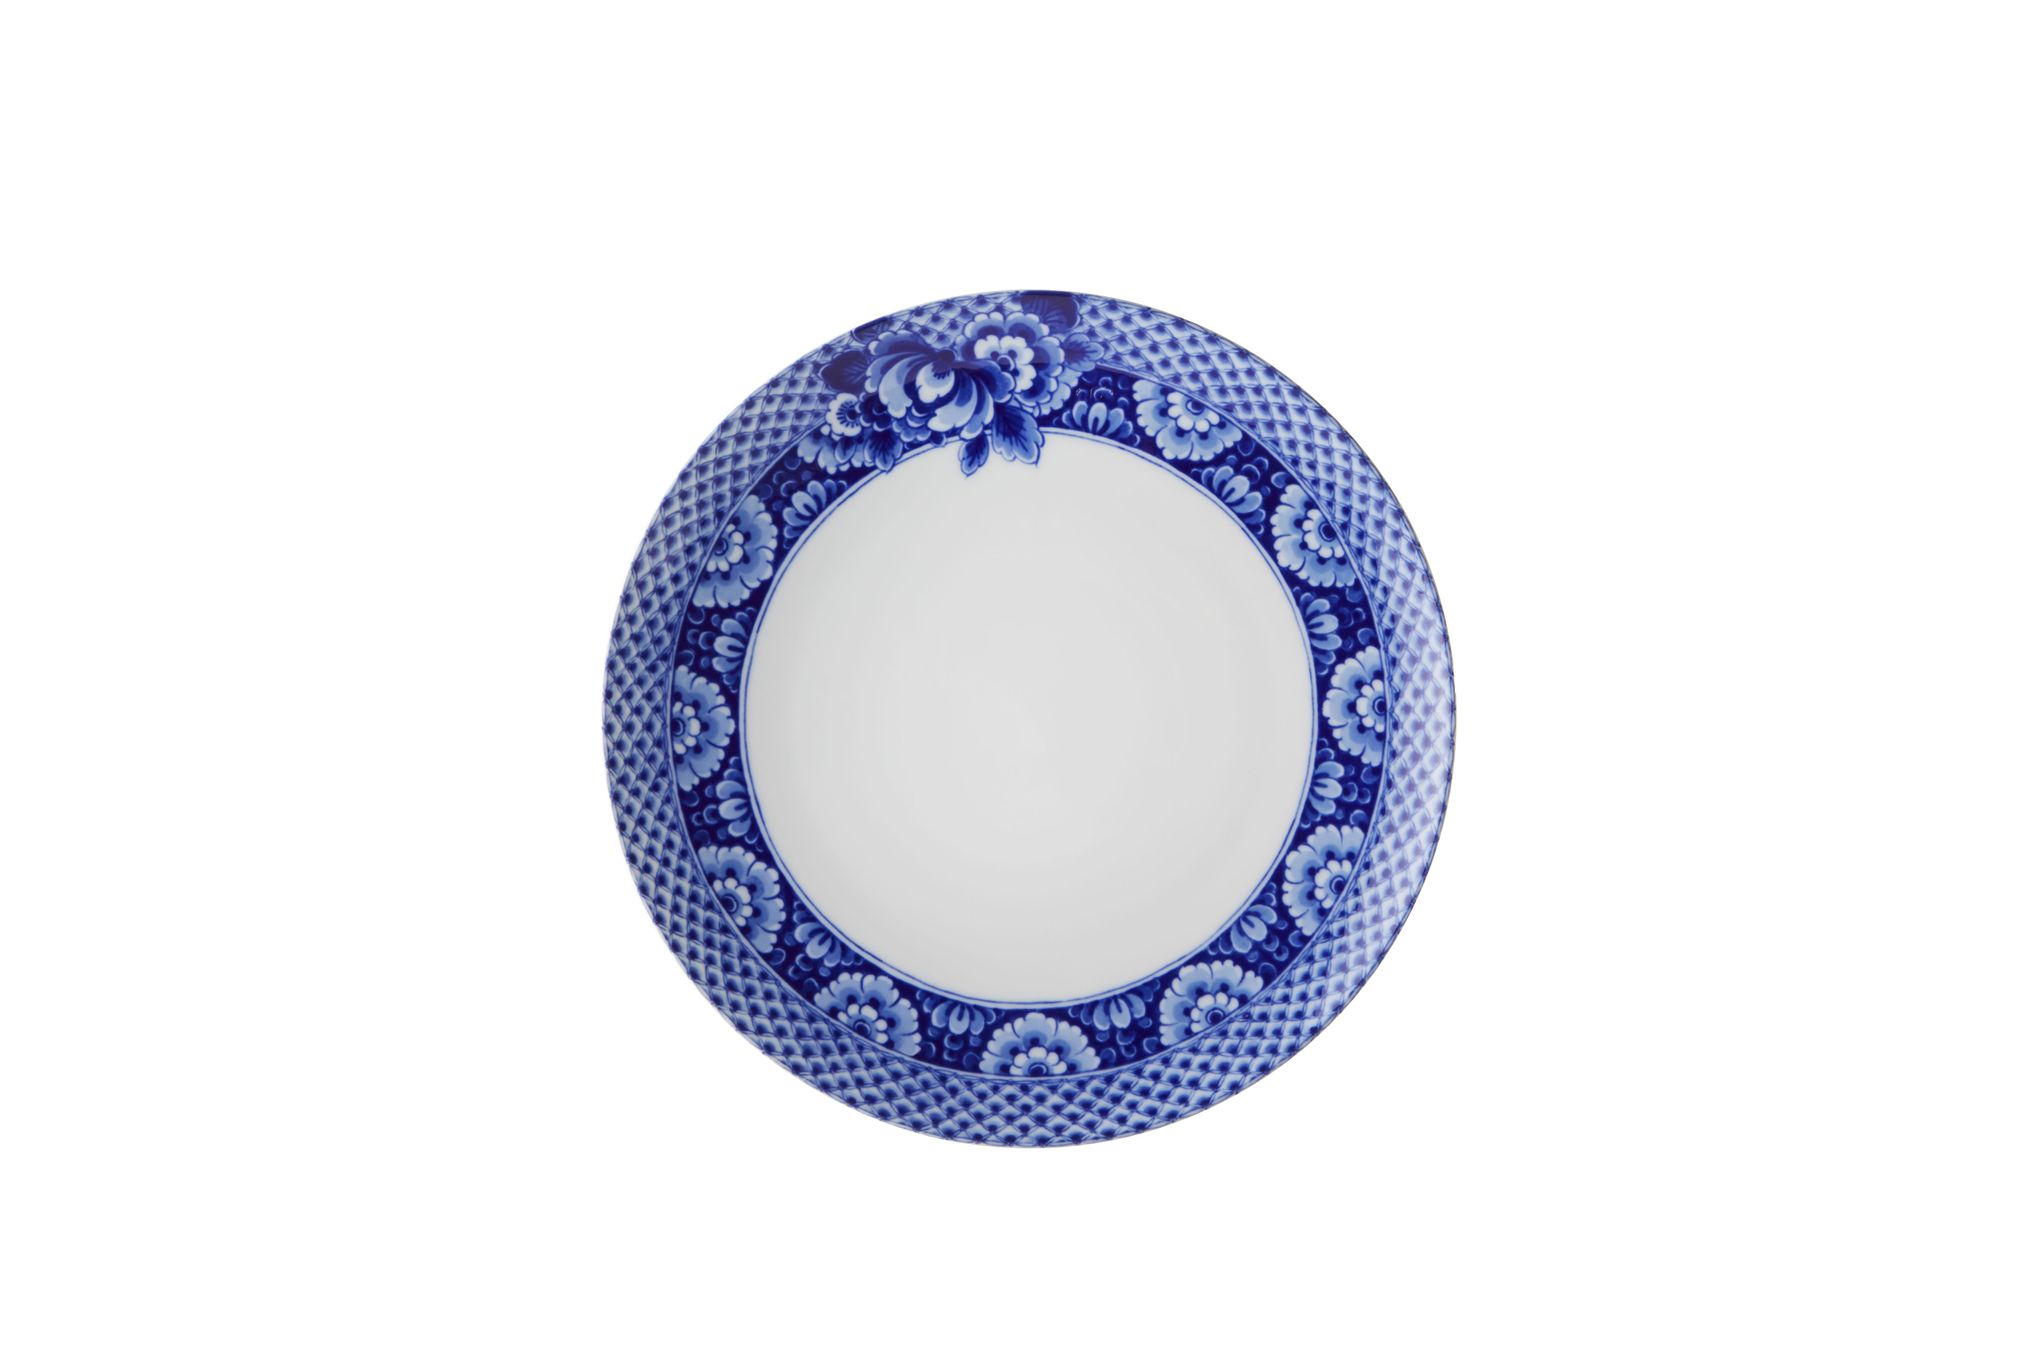 Vista Alegre Blue Ming Dinner Plate 27.8cm thumb 1